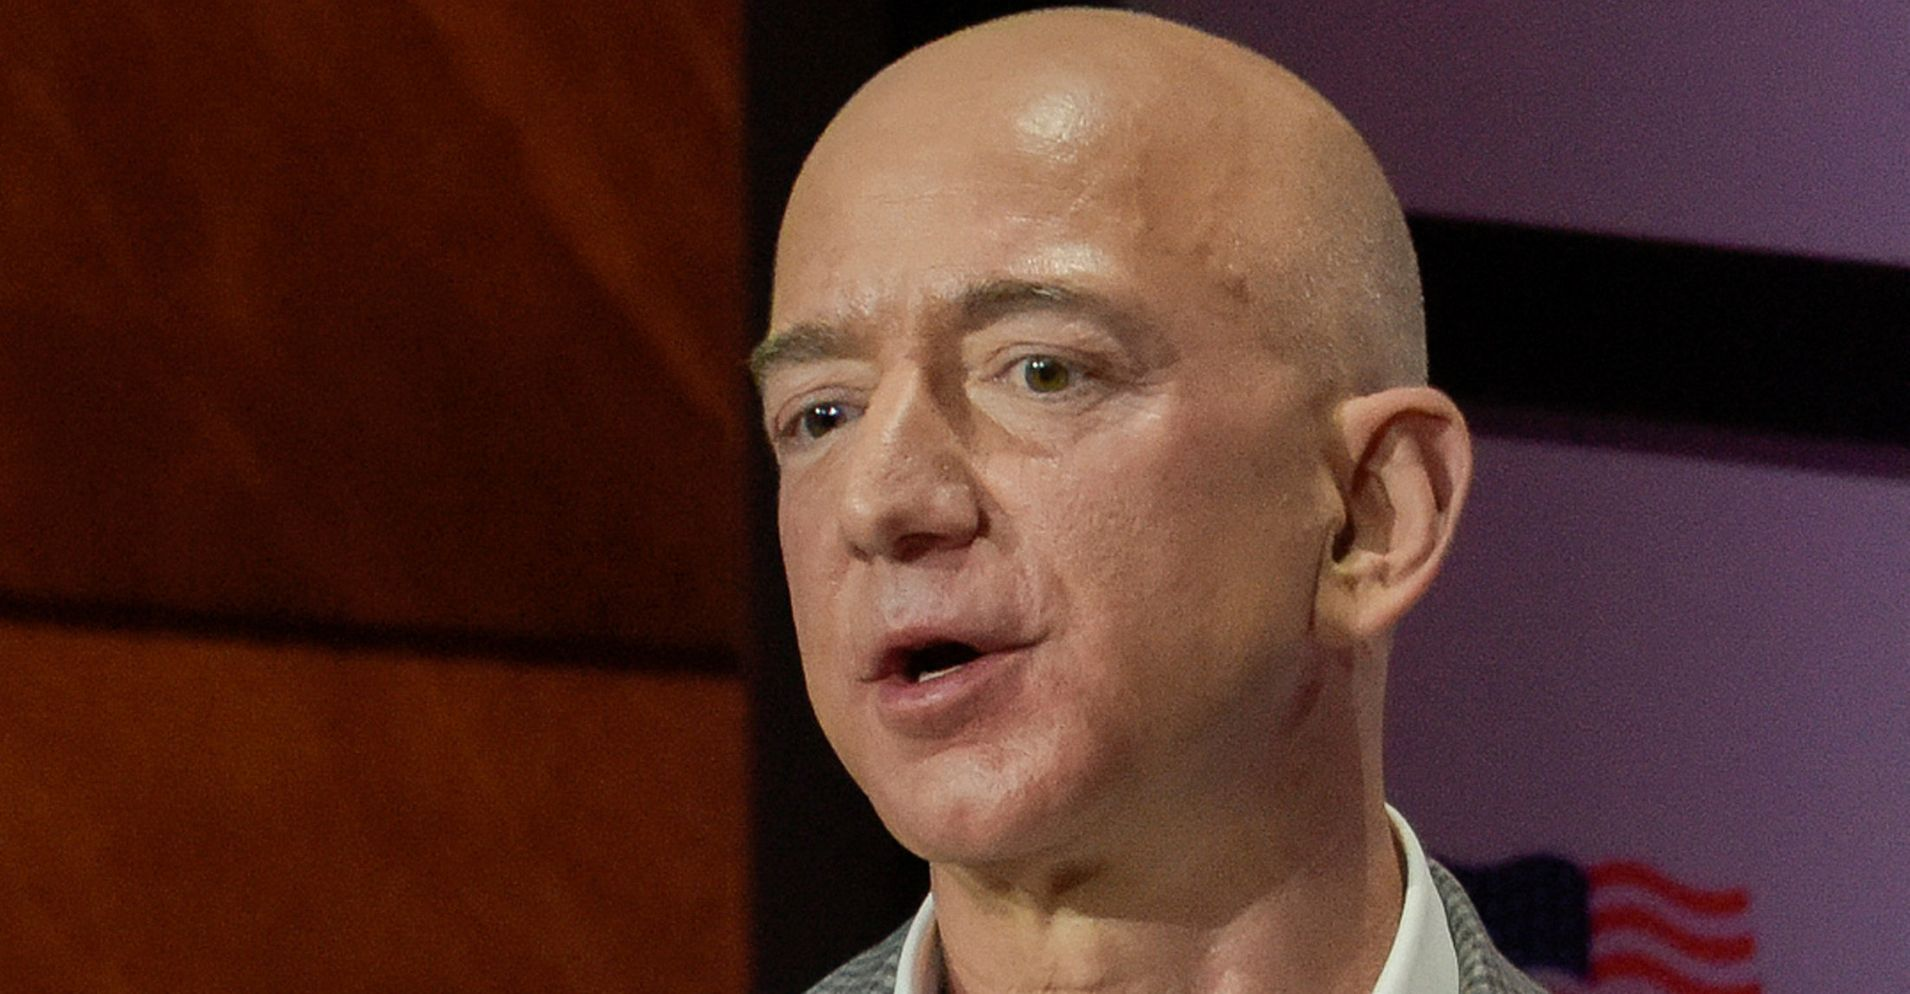 Amazon's Minimum Wage Hike Comes With Cuts To Other Compensation